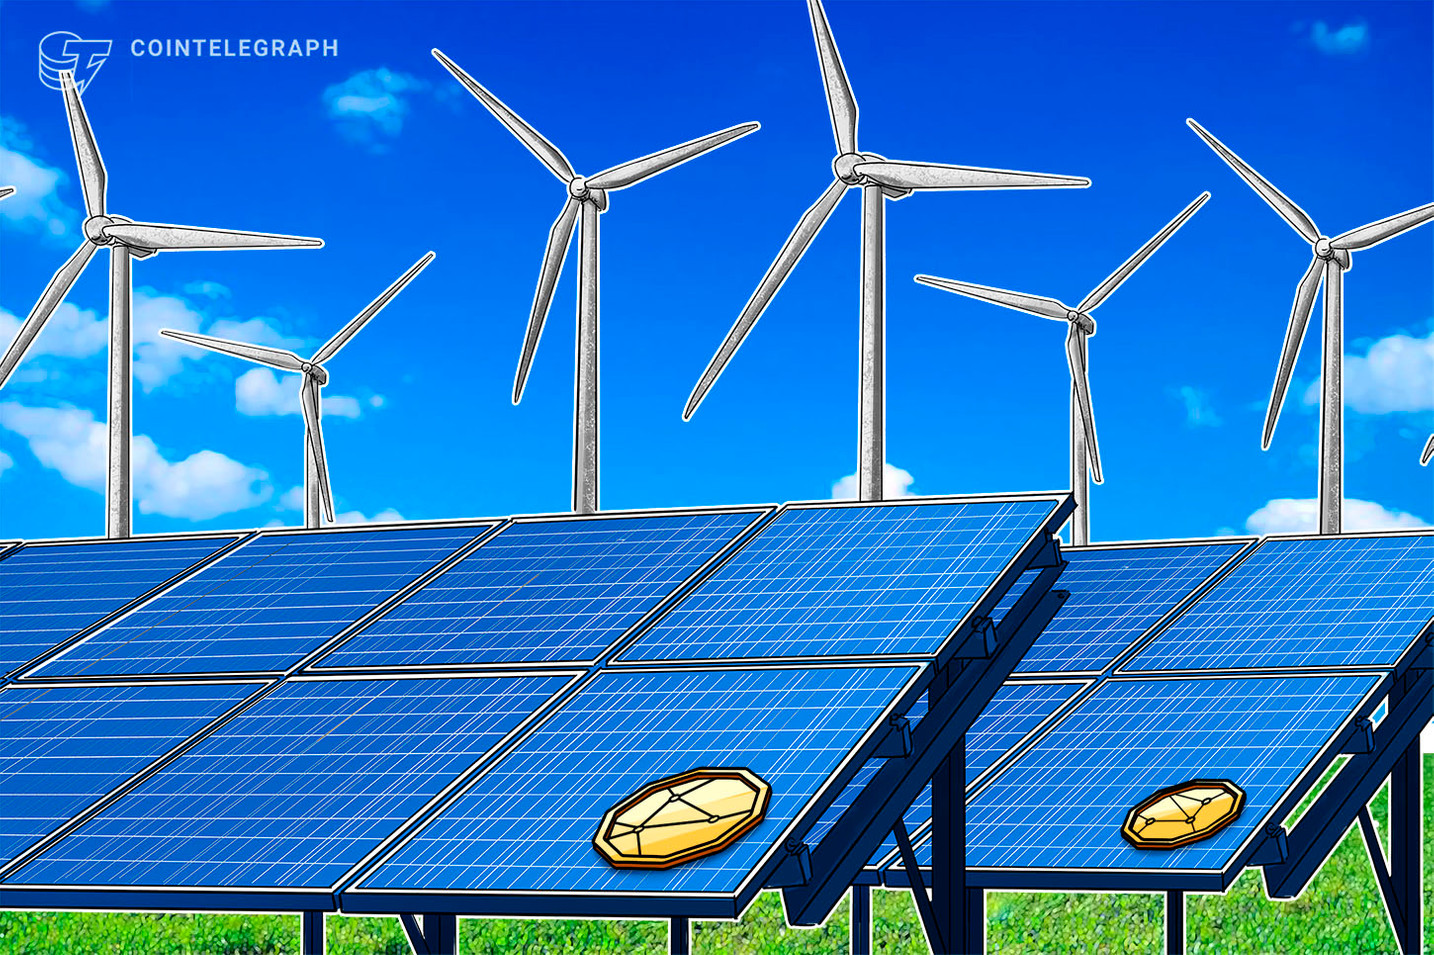 Researcher Challenges Bitcoin Mining Energy Consumption Alarmists, Says Debate 'Oversimplified'